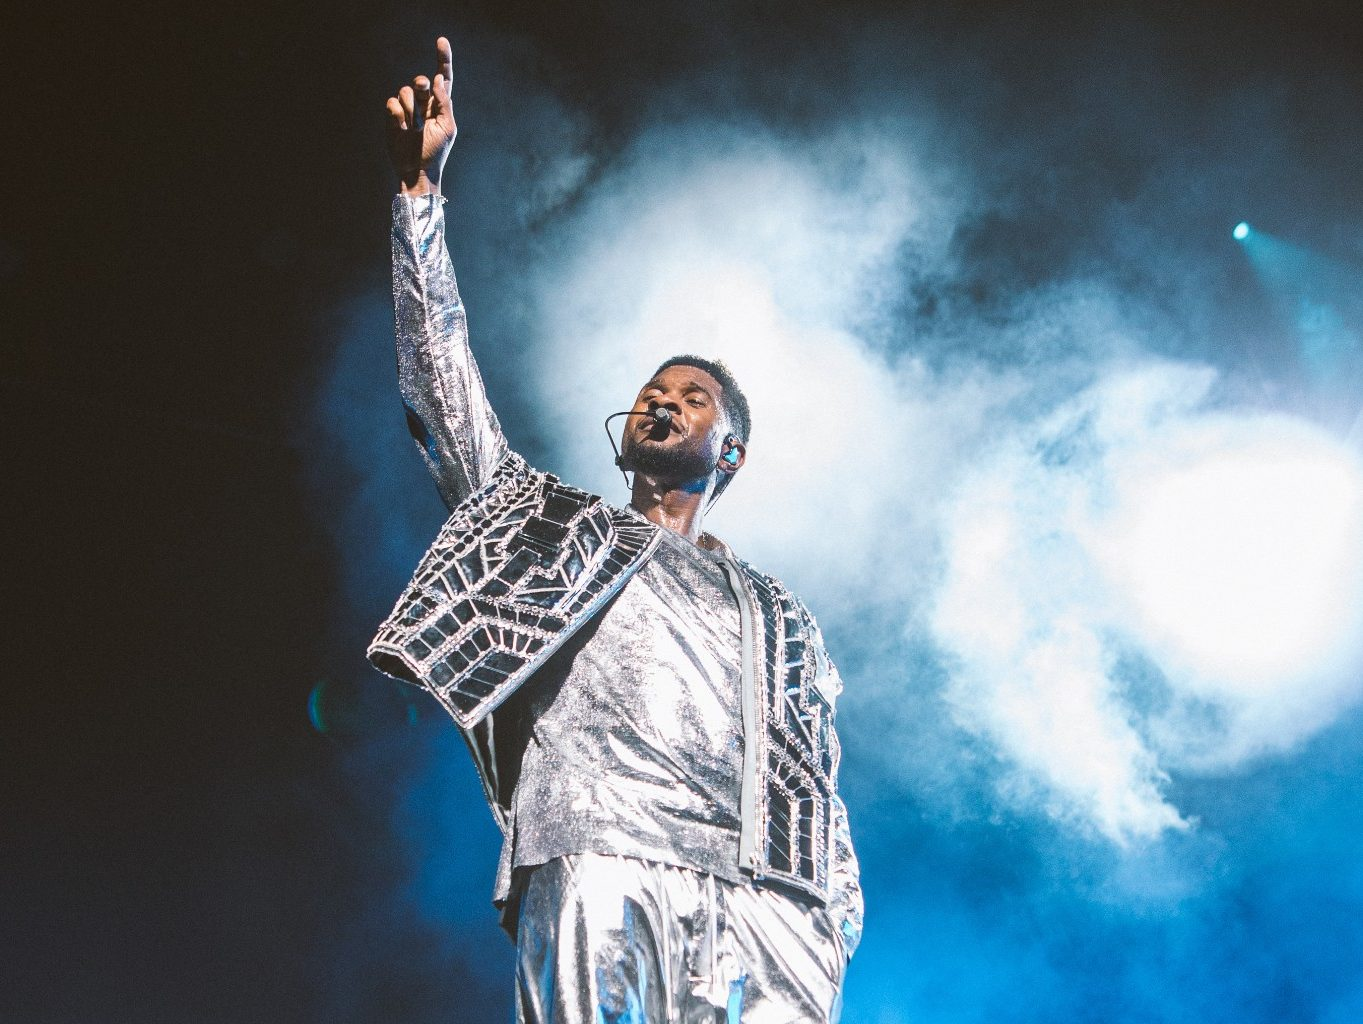 Usher Raymond in silver clothes raising up one hand as he overlooks the crowd at his Las Vegas Residency at Caesar's Palace. Blue and black background with white fog.